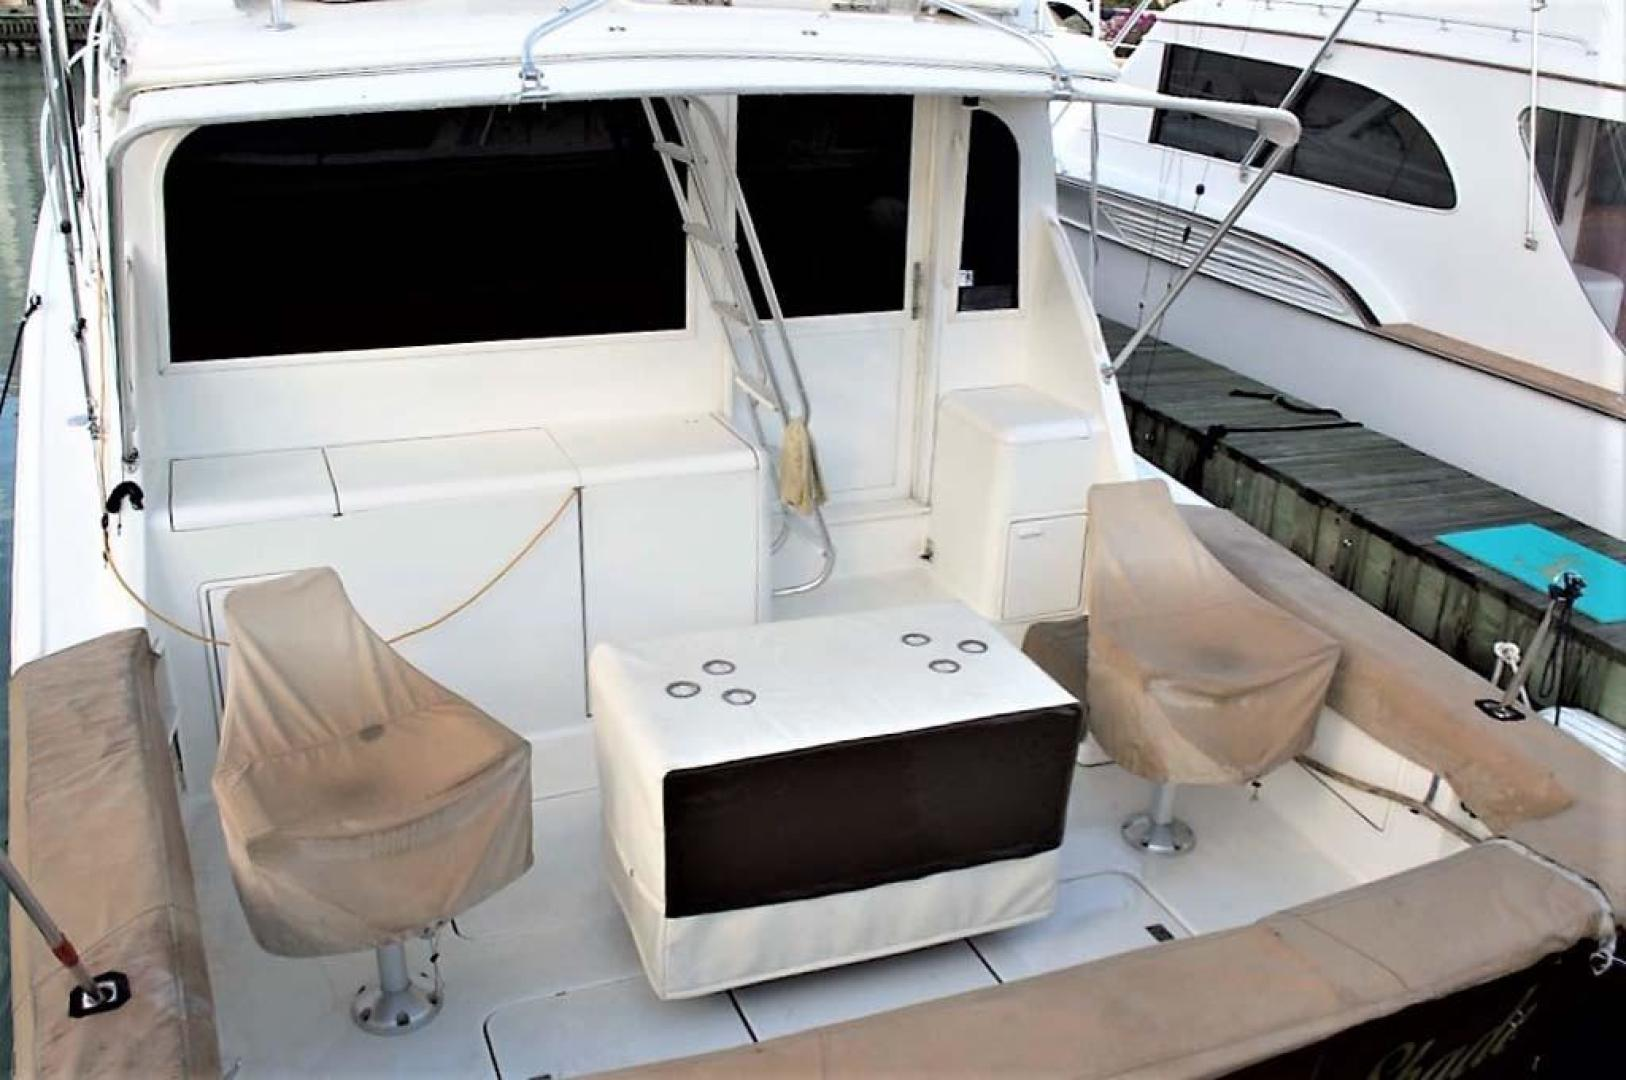 Ocean-Yachts-53-Super-Sport-1998-Made-in-the-Shade-Stuart-United-States-Cockpit-929984